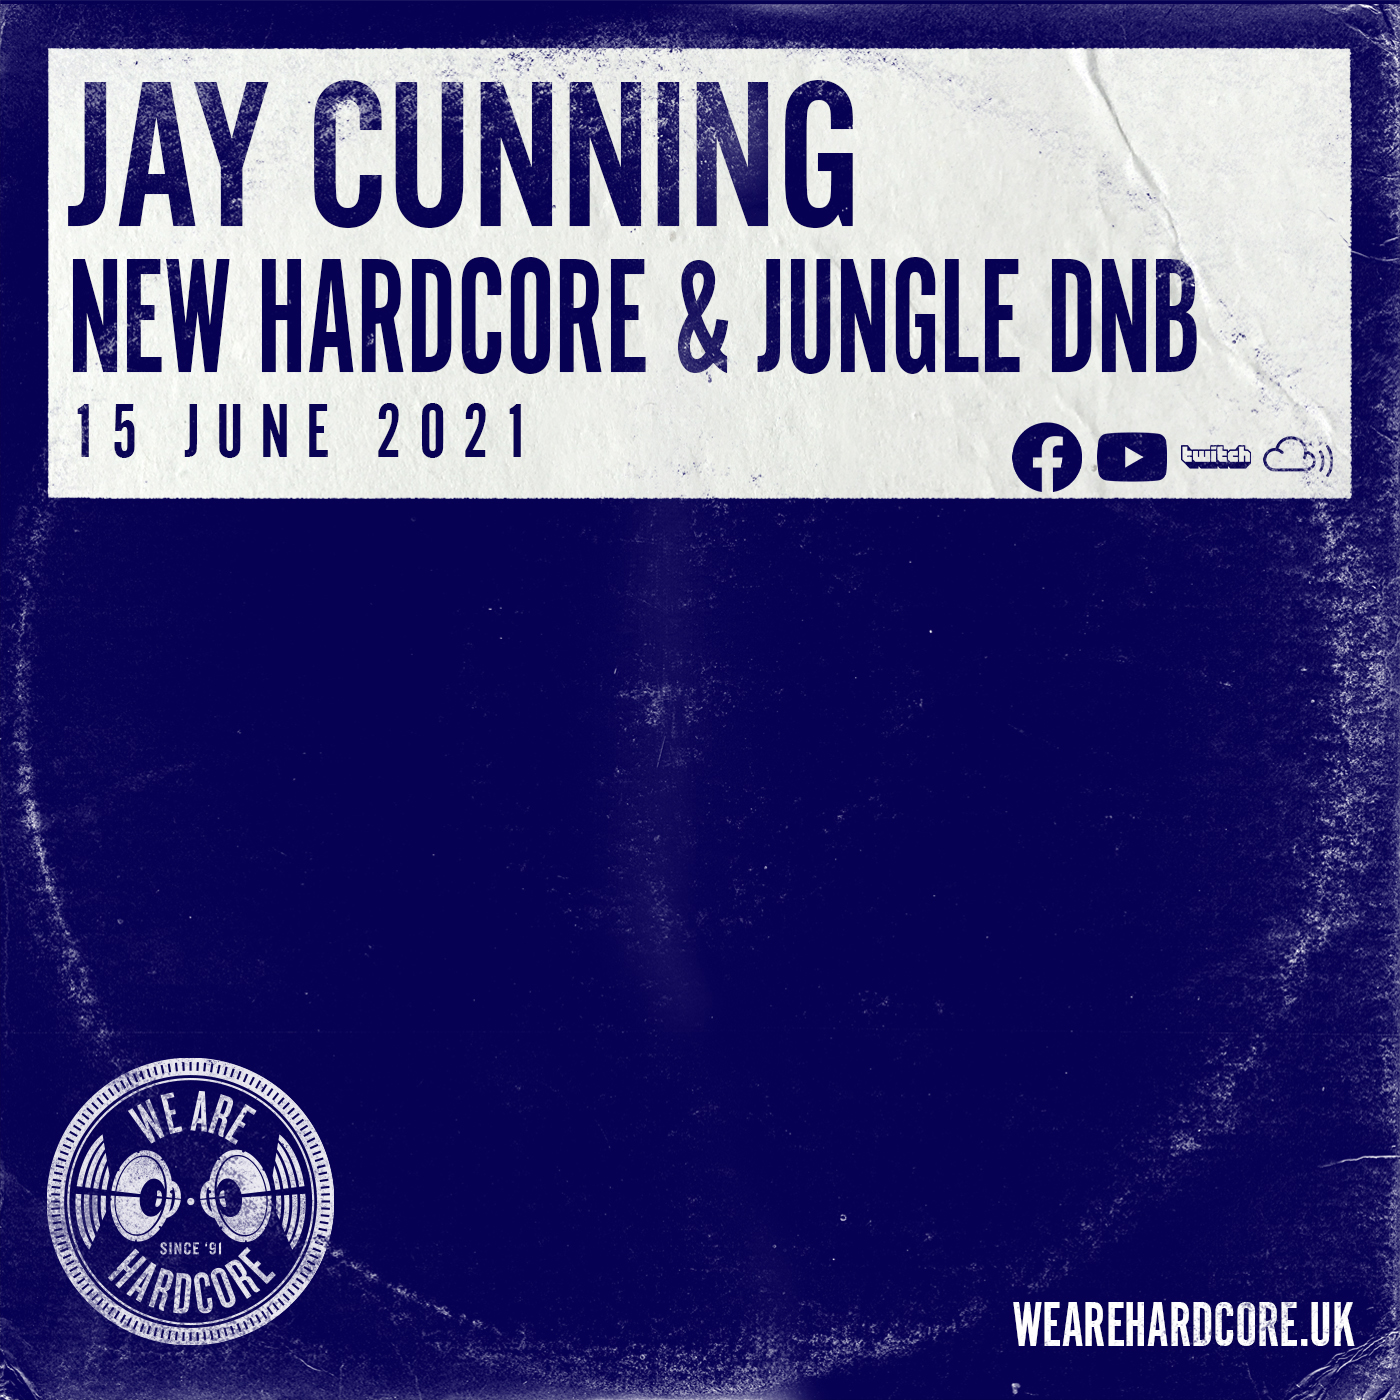 Download Jay Cunning - New Hardcore Jungle (15 June 2021) mp3